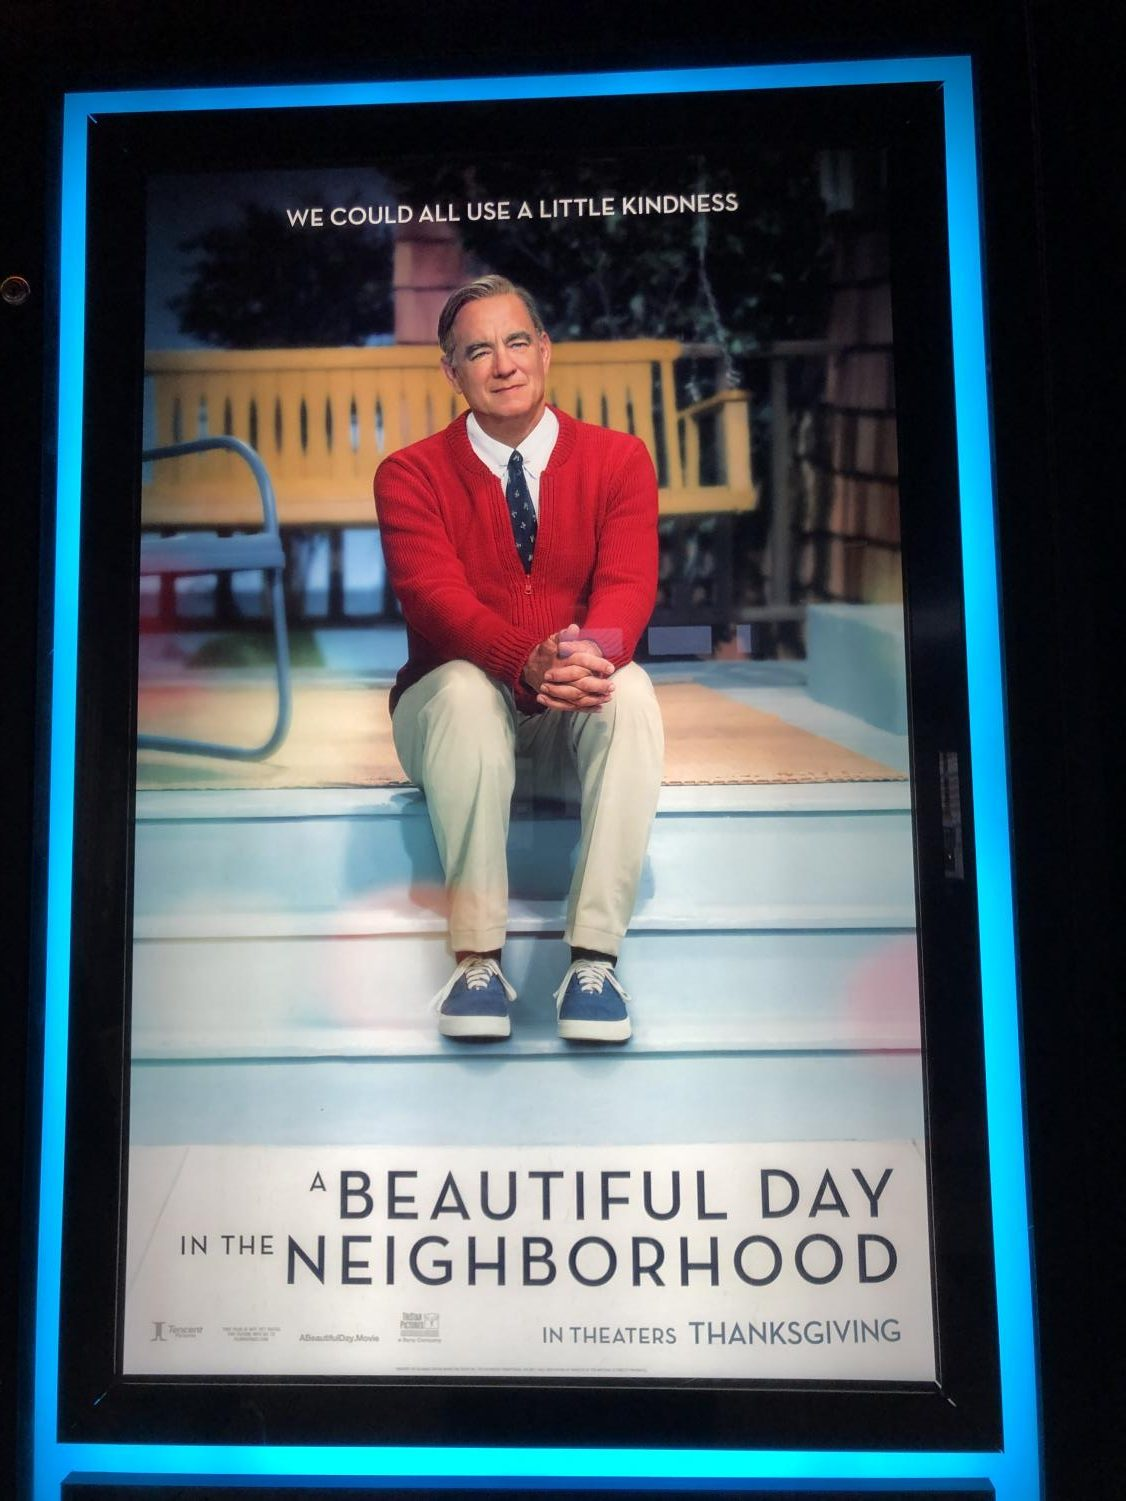 On Nov. 22 2019, the film A Beautiful Day in the Neighborhood was released into theatres all over the United States. Based on the friendship between journalist Tom Junod (Matthew Rhys) and  Fred Rogers (Tom Hanks), this drama highlights the importance of kindness and acceptance during hard times.